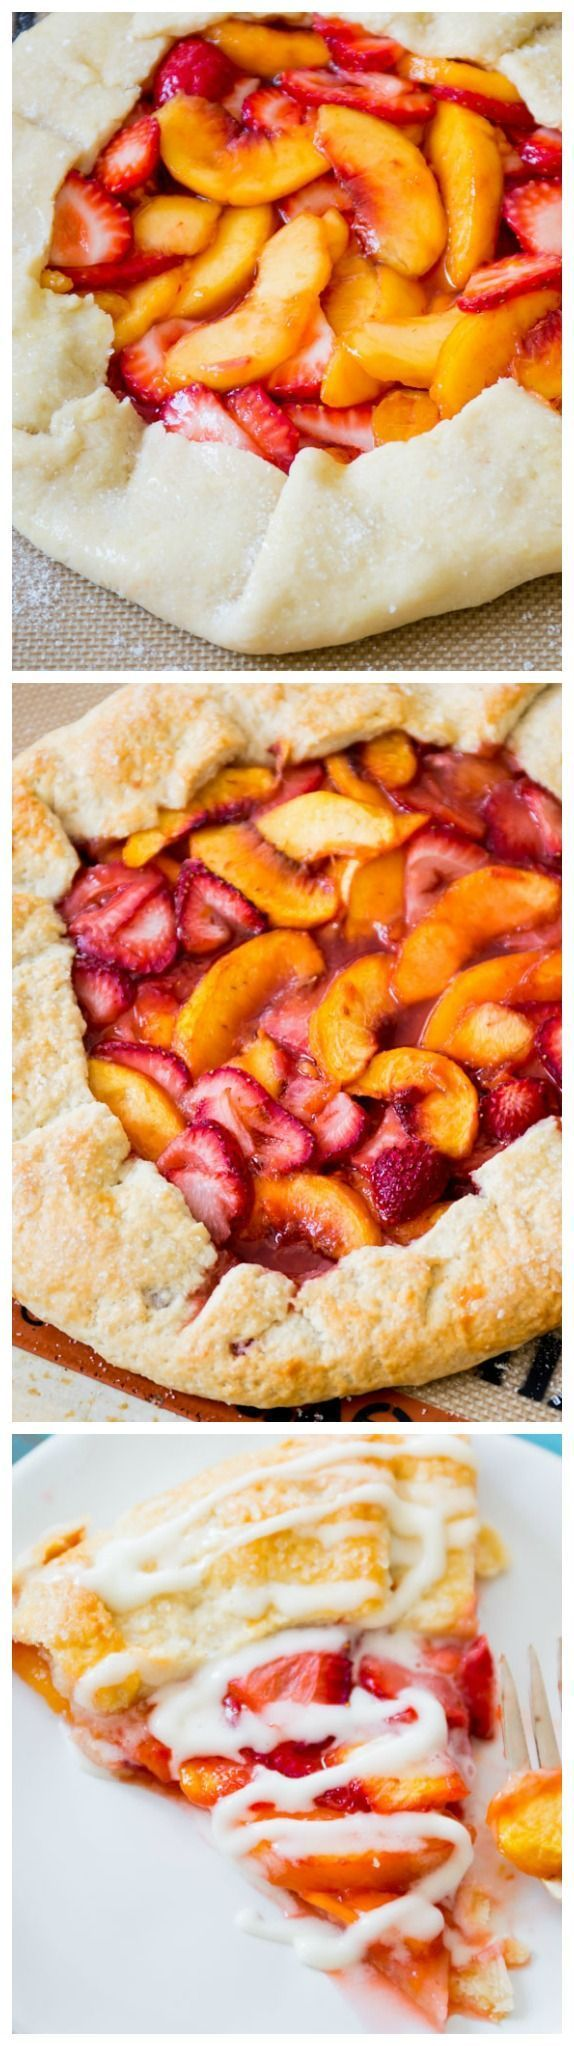 Rustic Strawberry Peach Tart